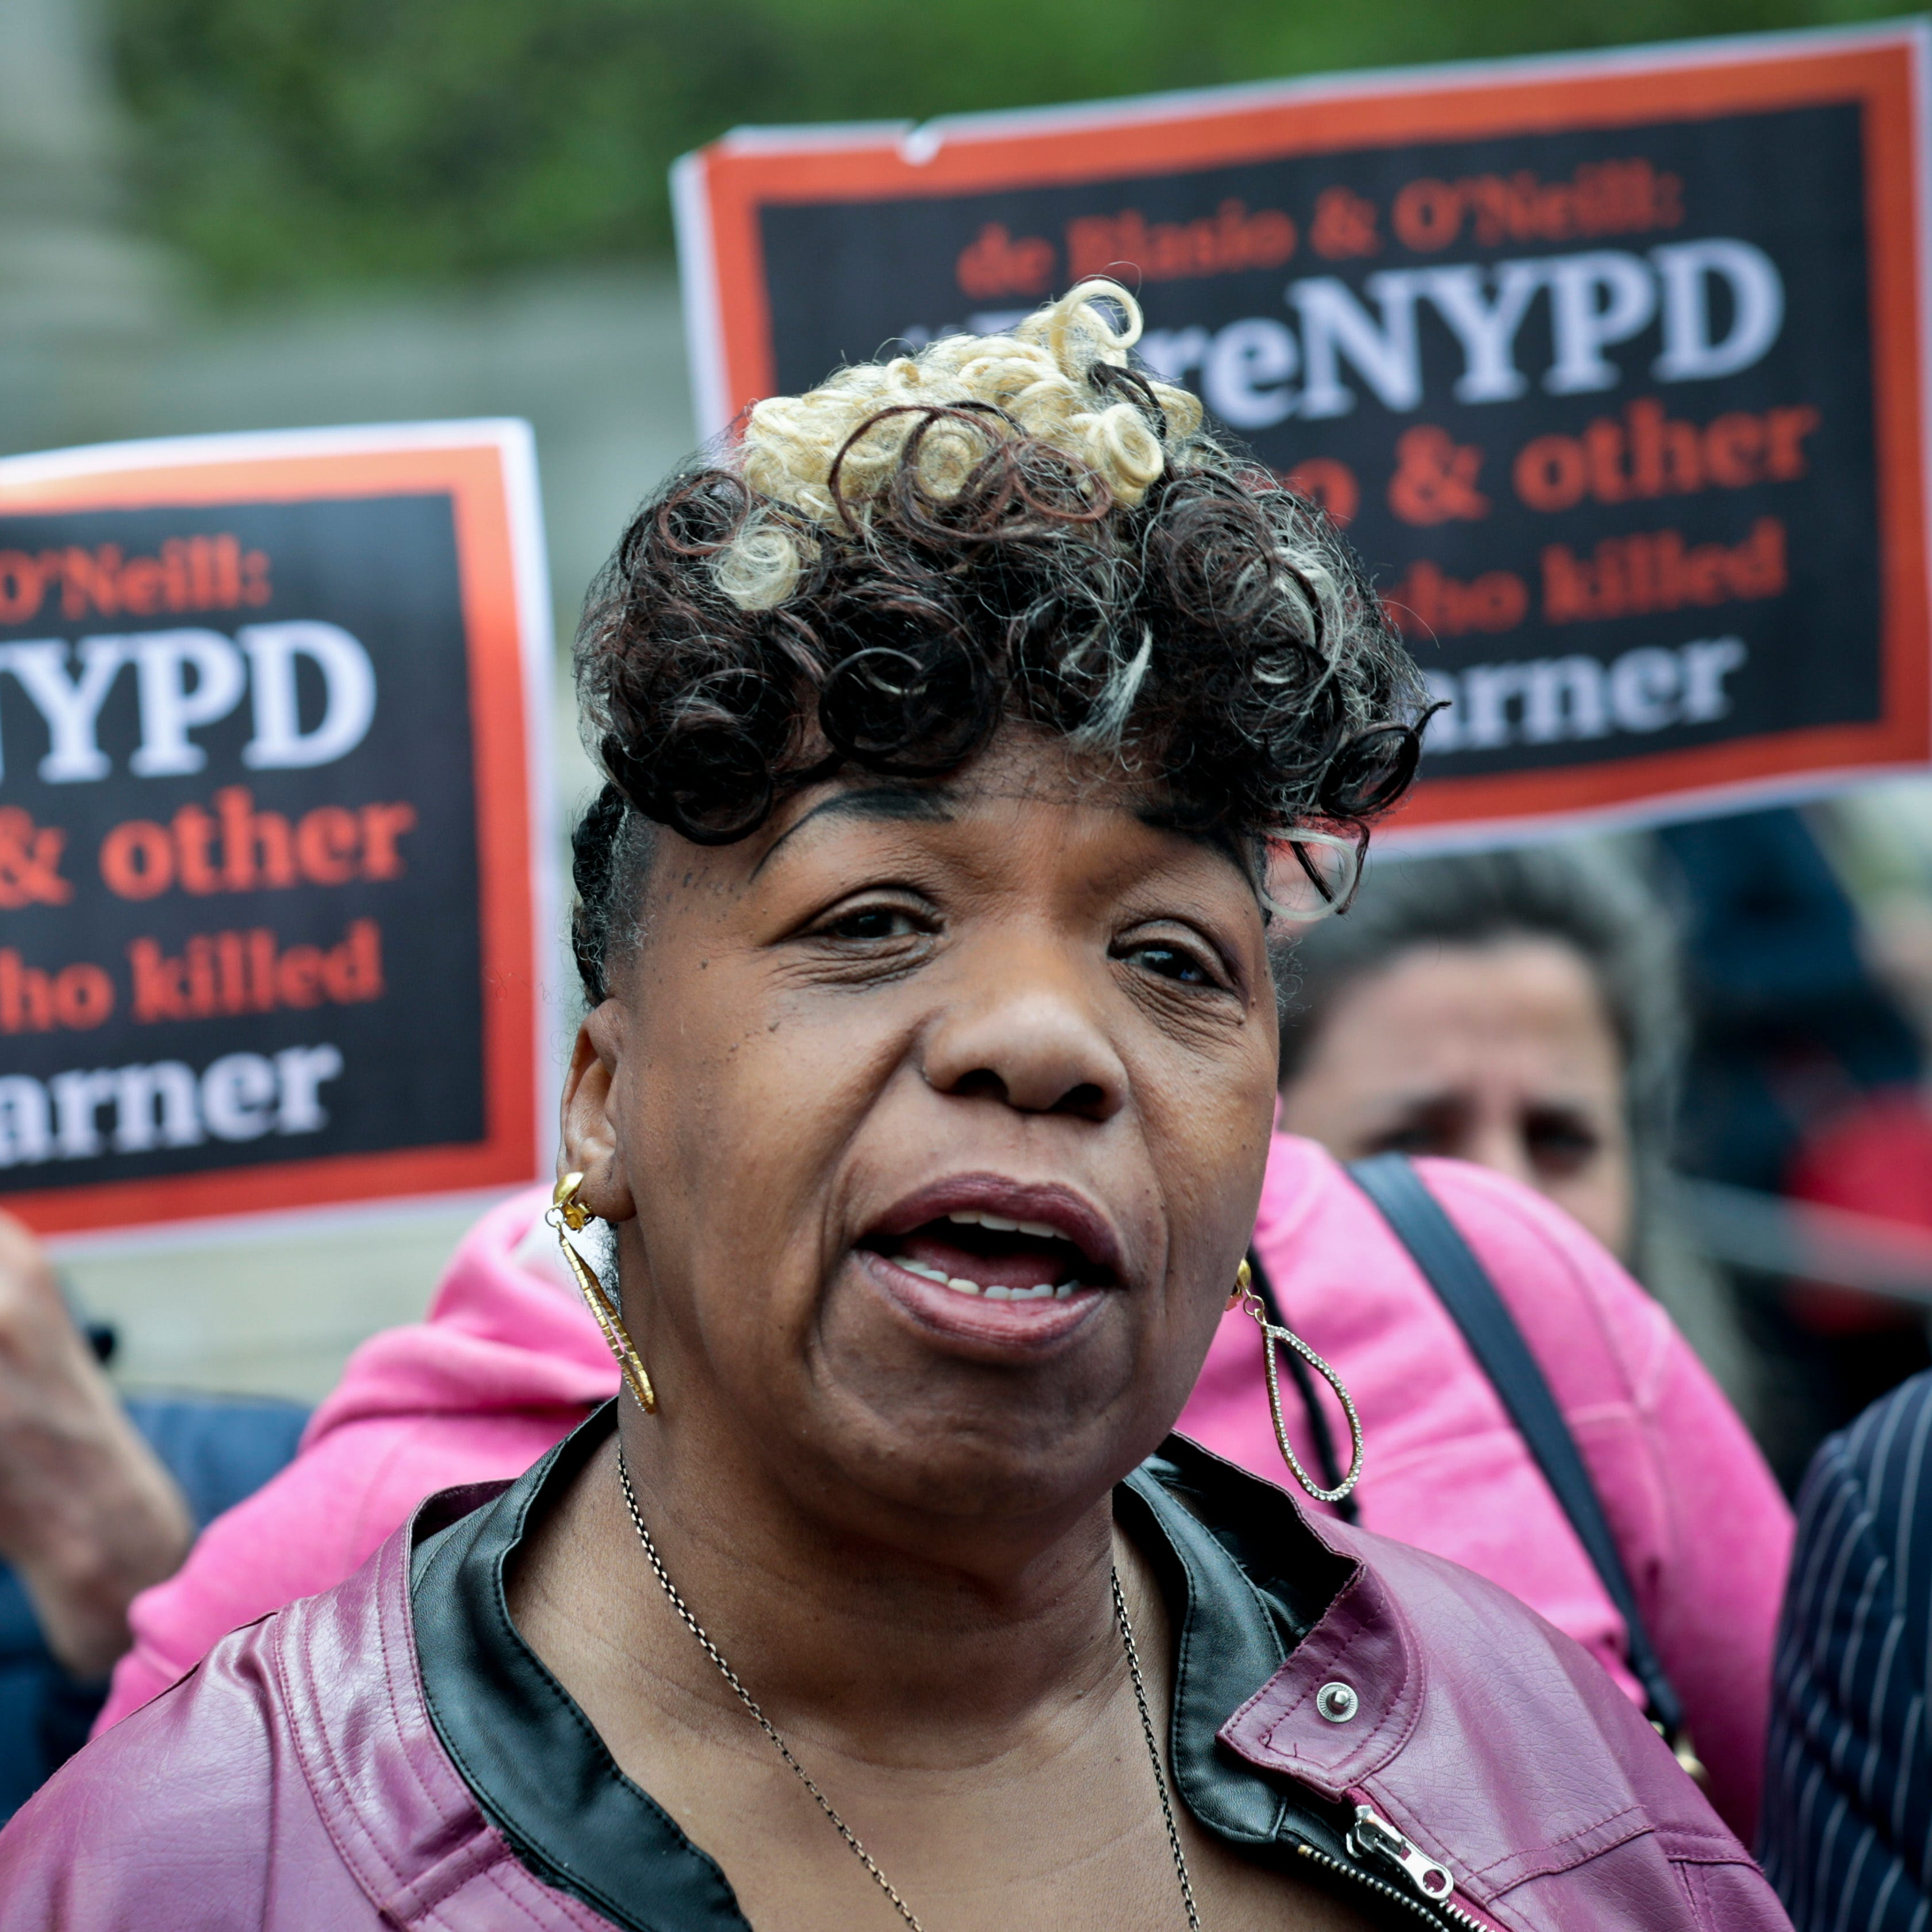 NYC cop faces reckoning 5 years after chokehold death